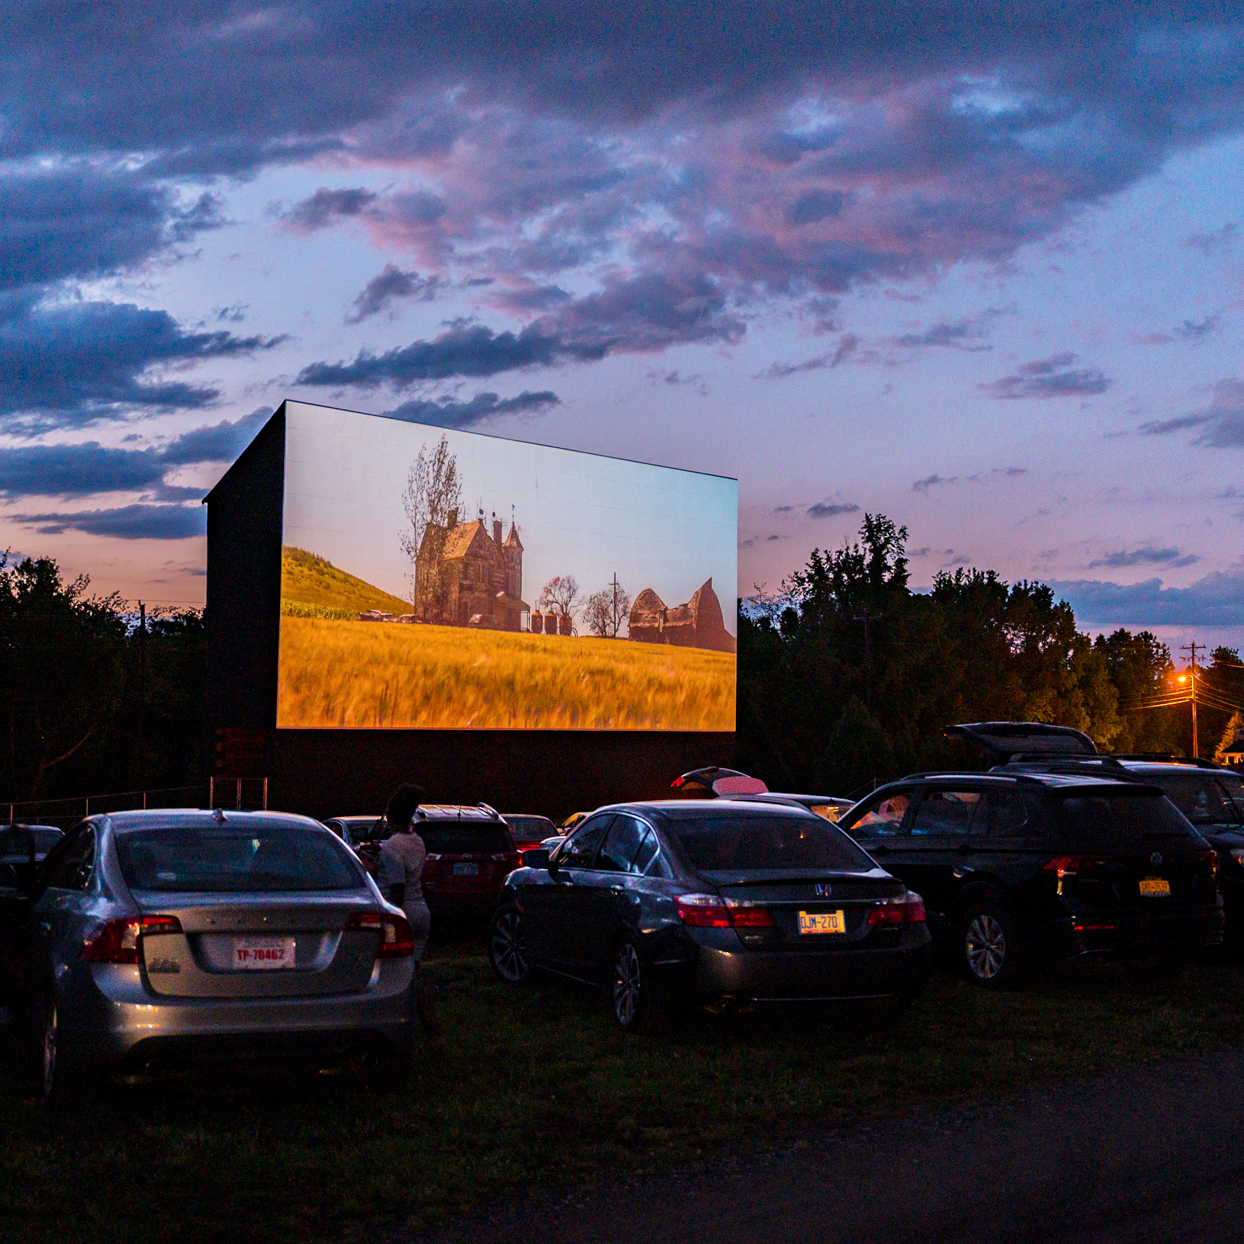 sunset image of Hound's Drive-In in North Carolina